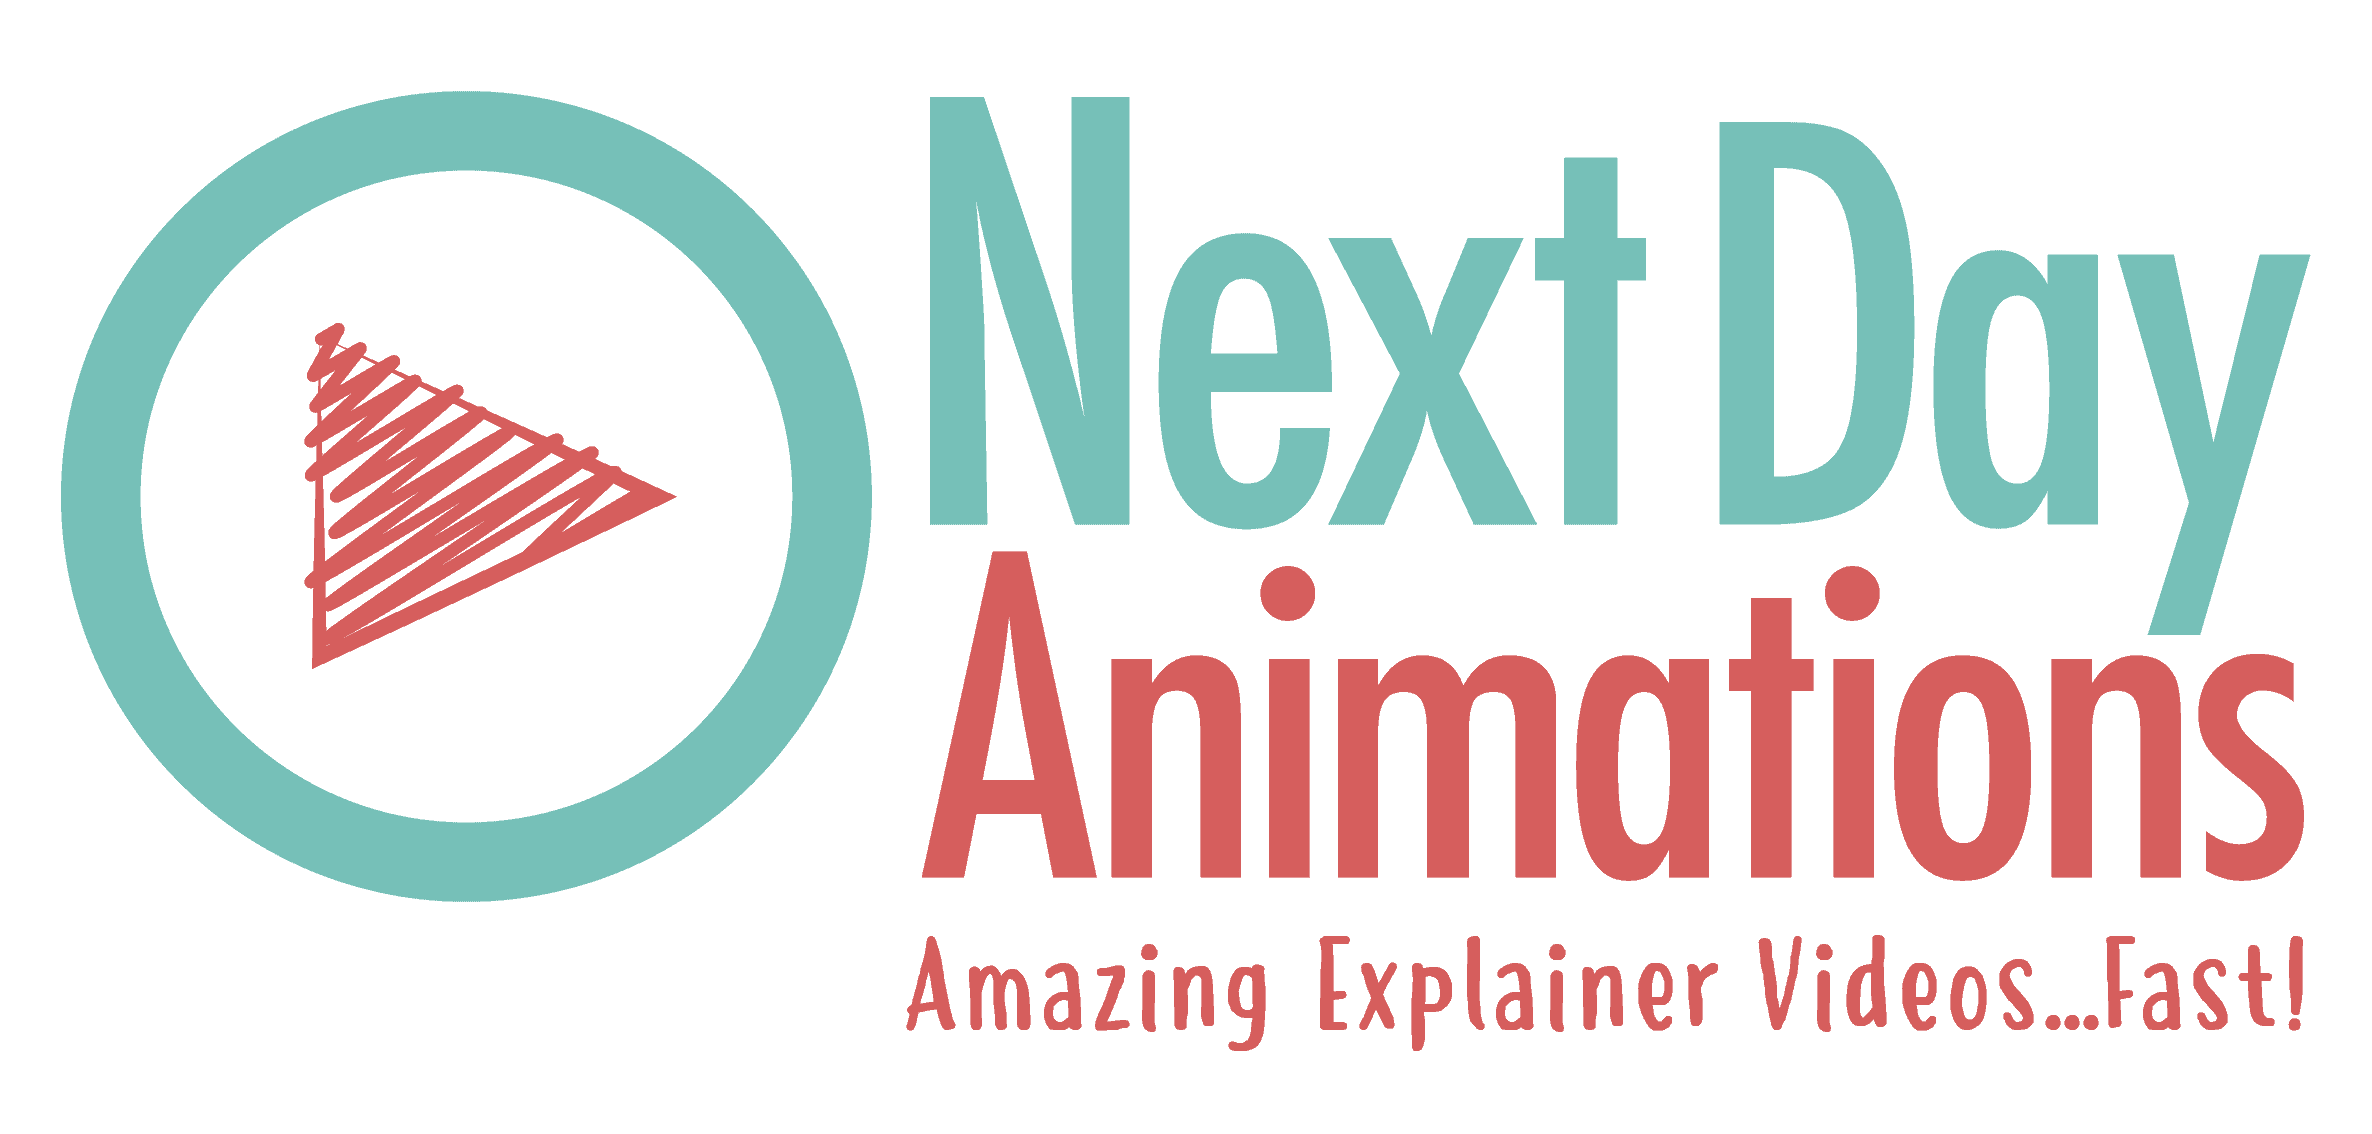 Next Day Animations